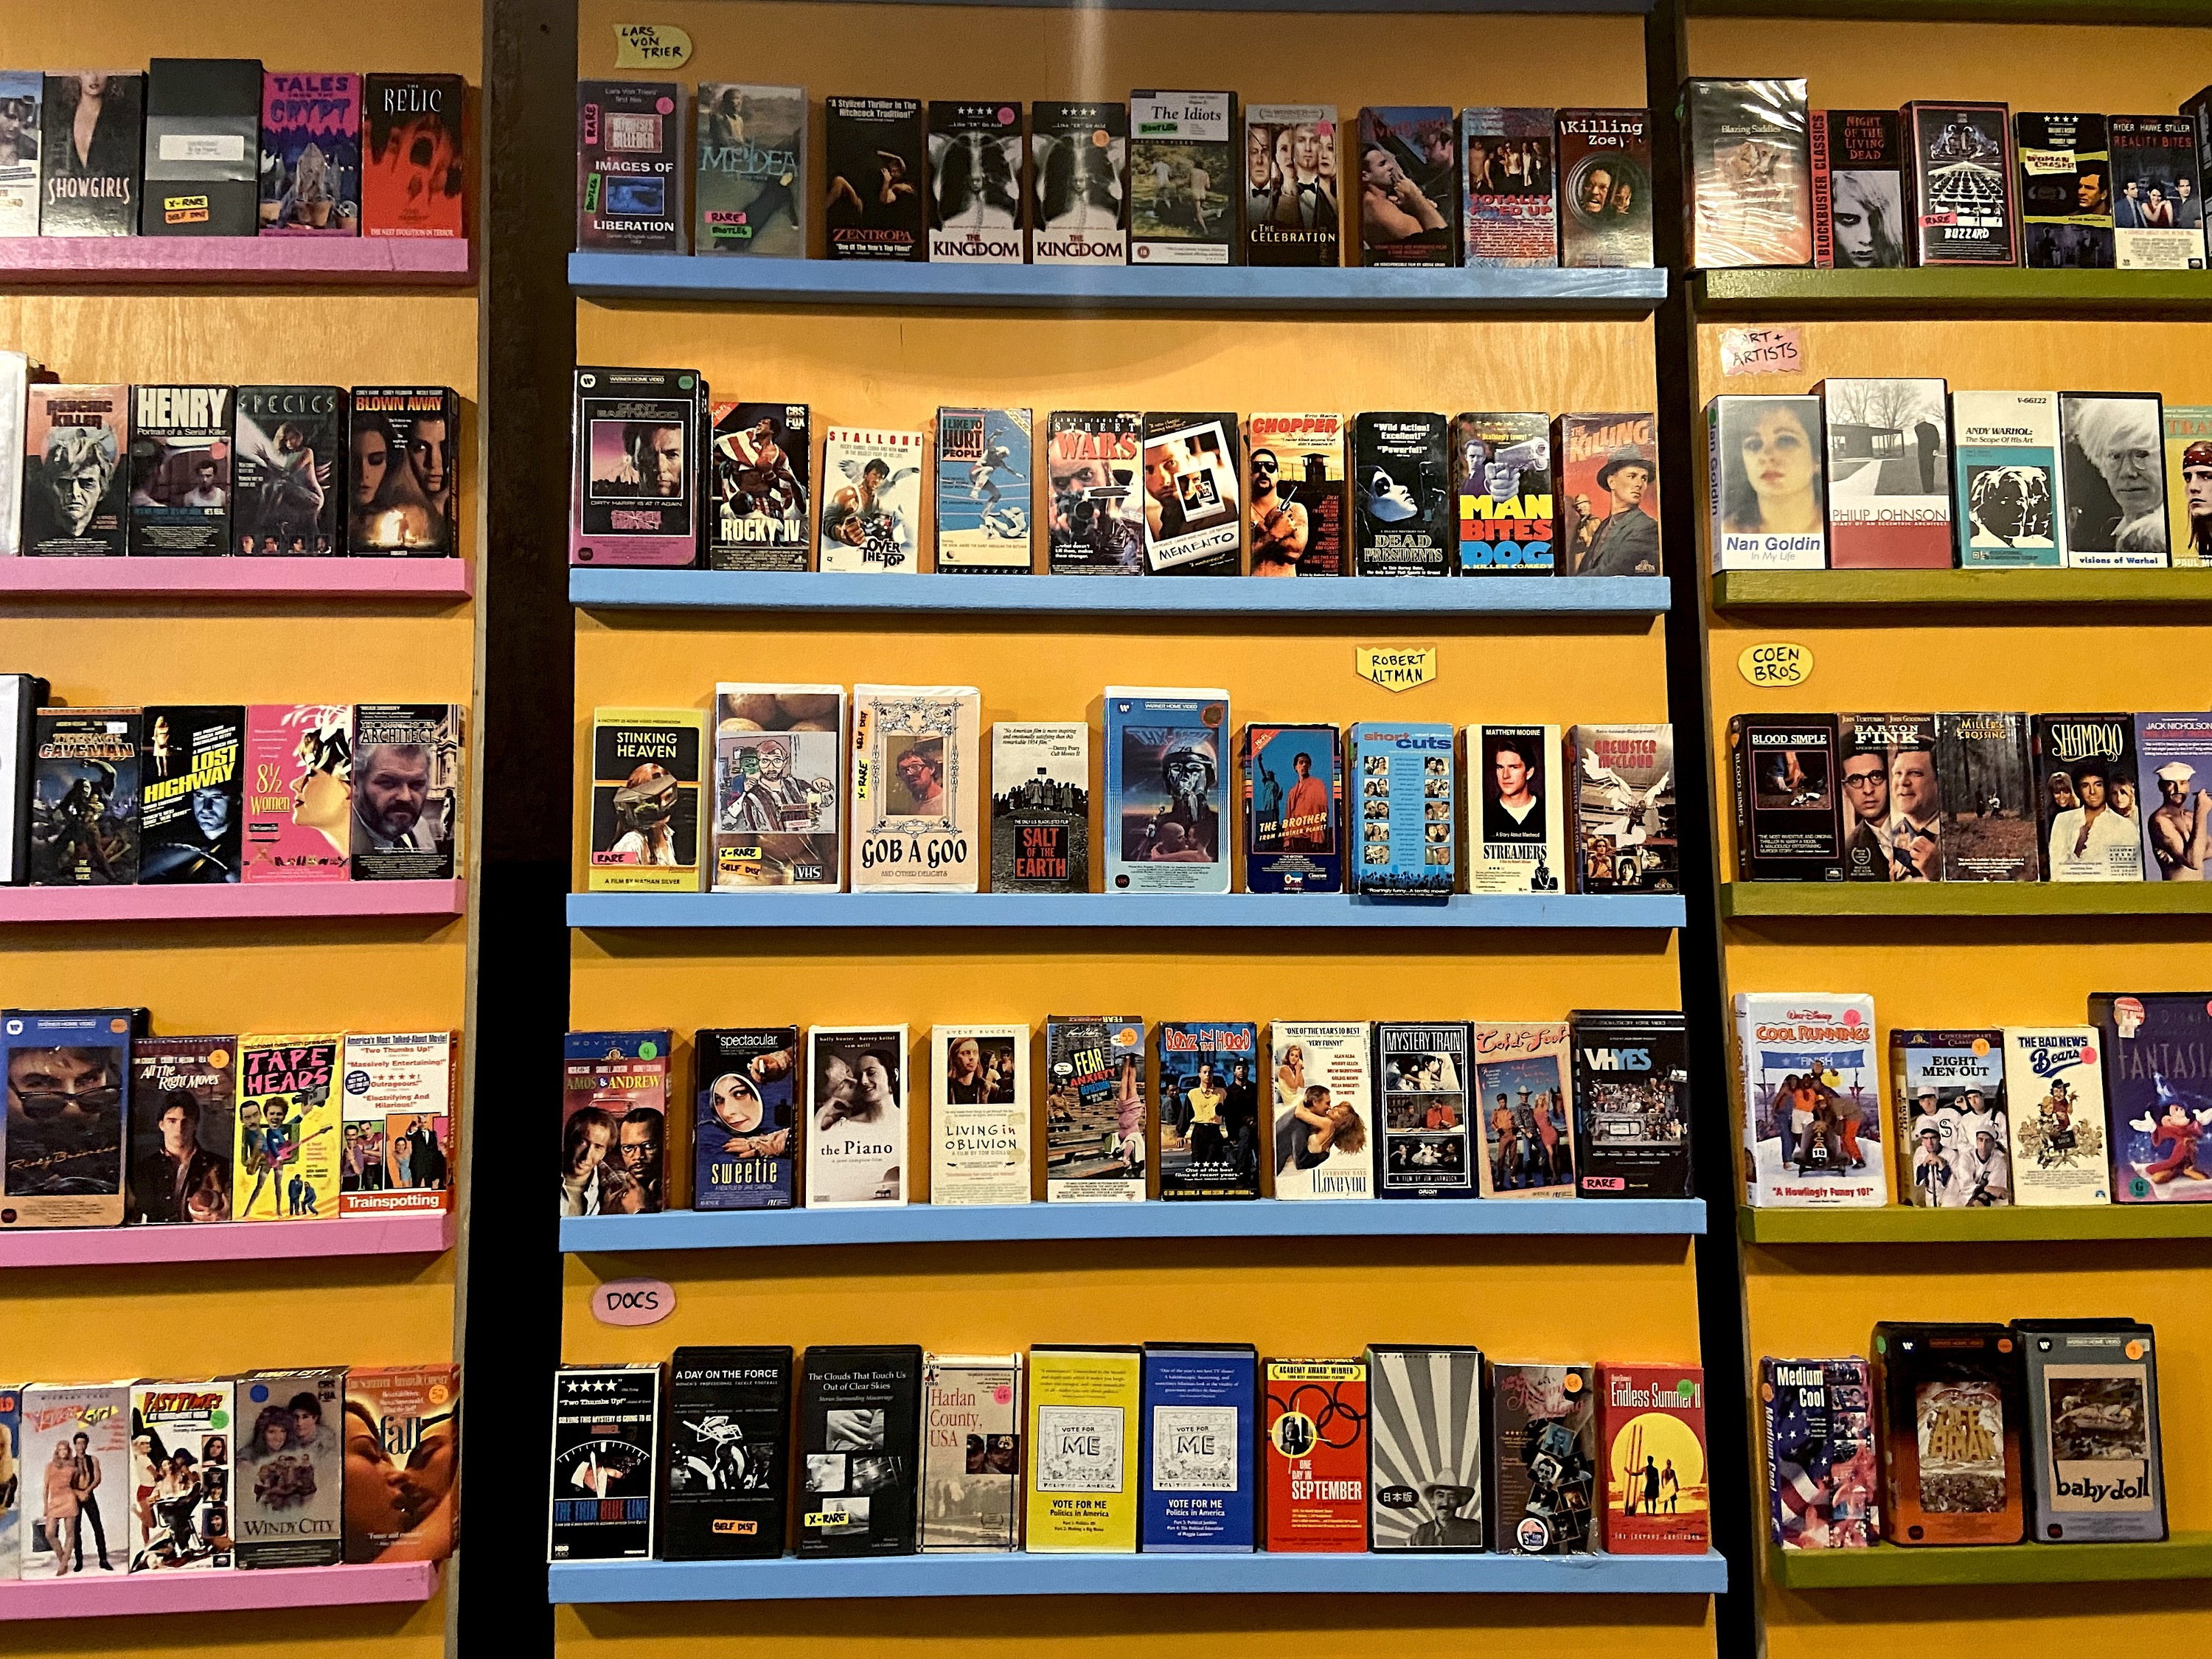 Rent a VHS tape from Joe Swanberg